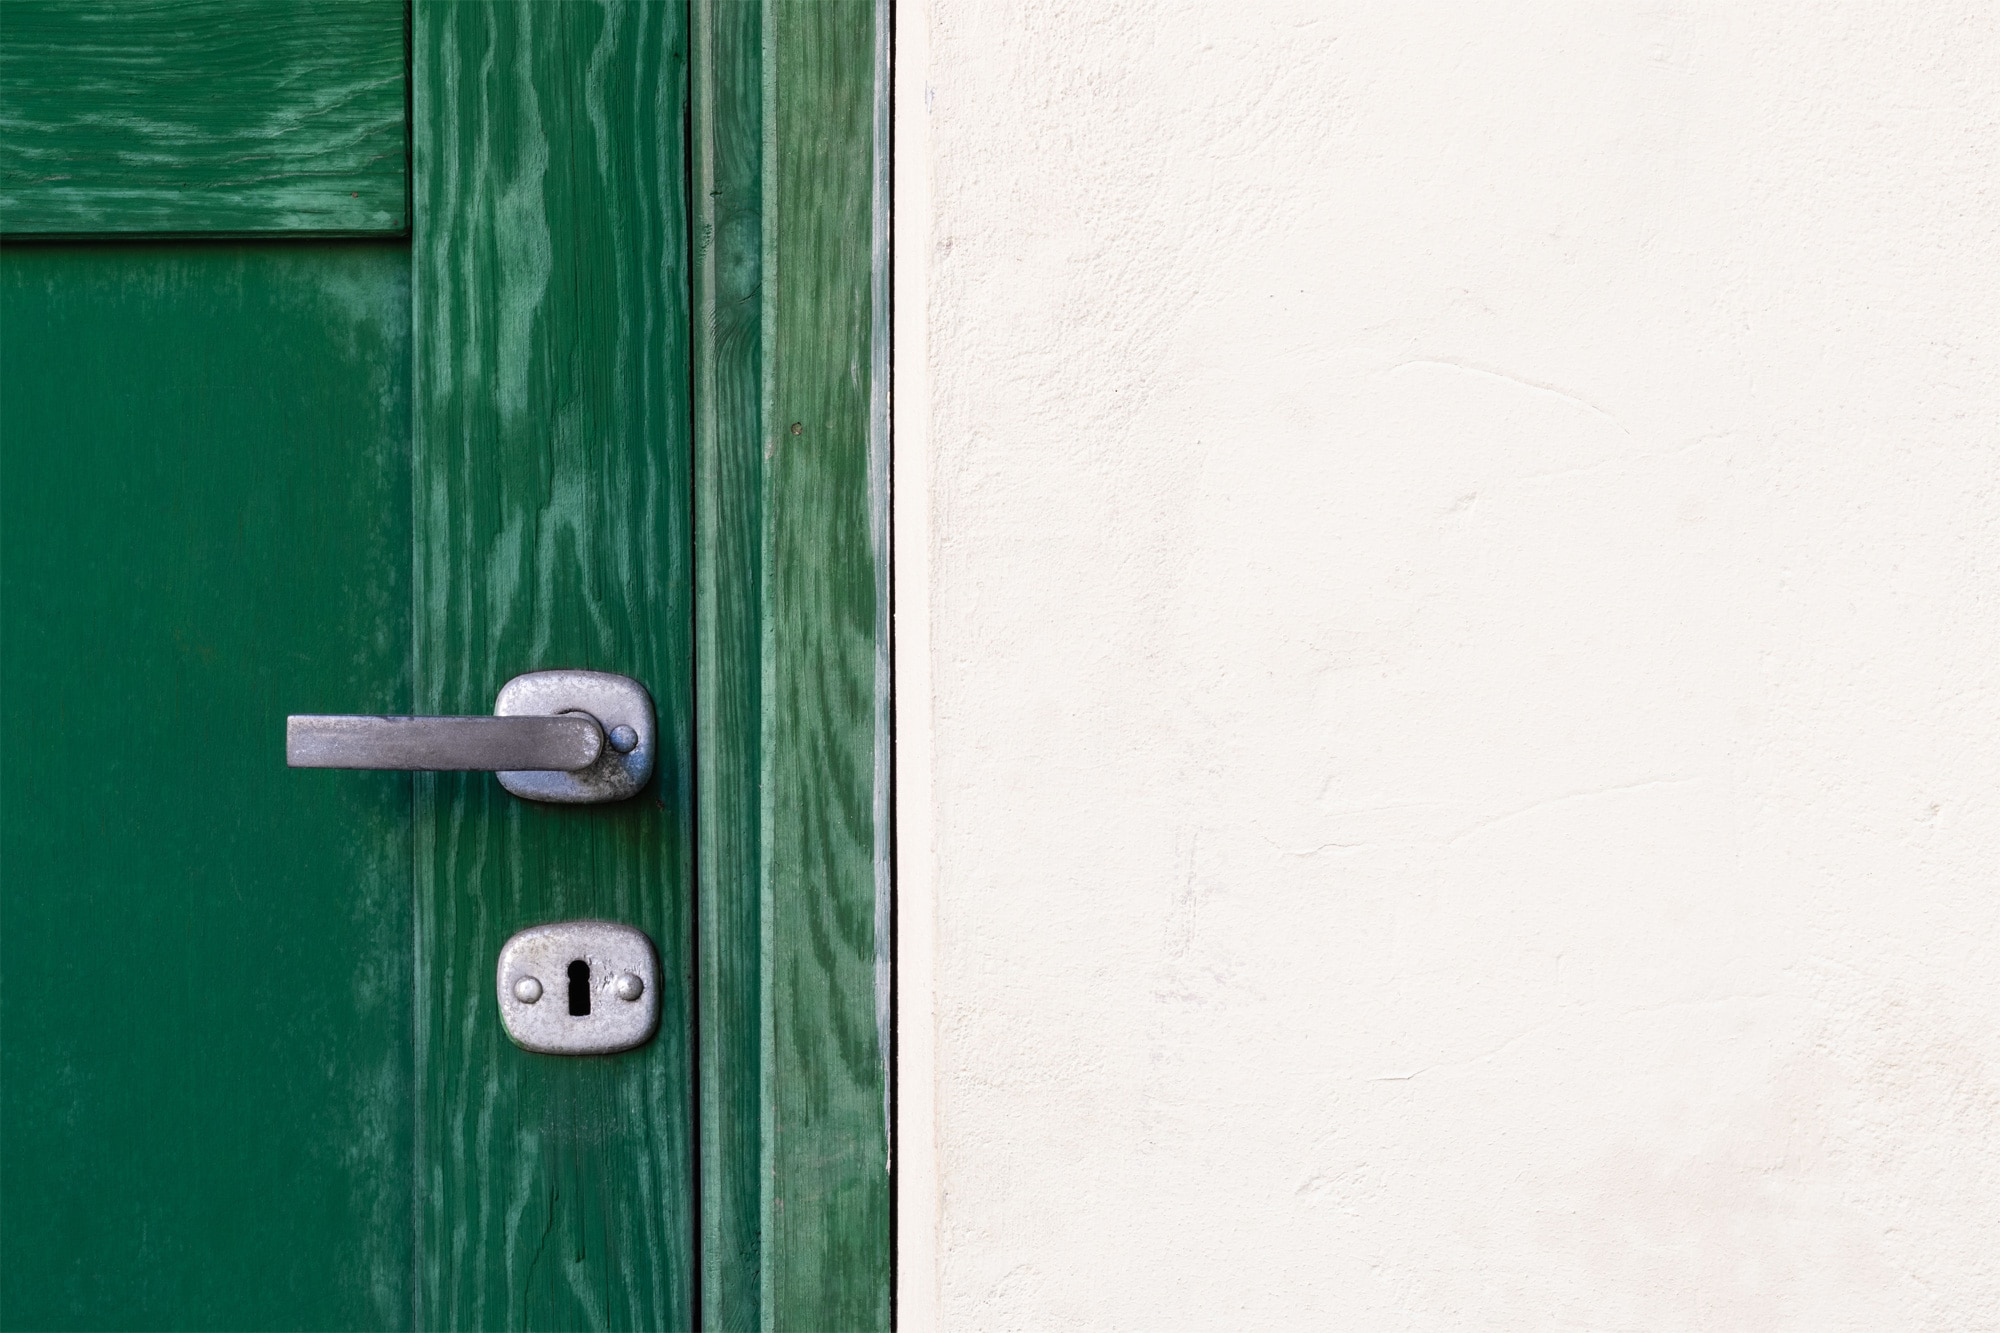 A green door and knob to symbolize the decision of going from side-hustle to full-time